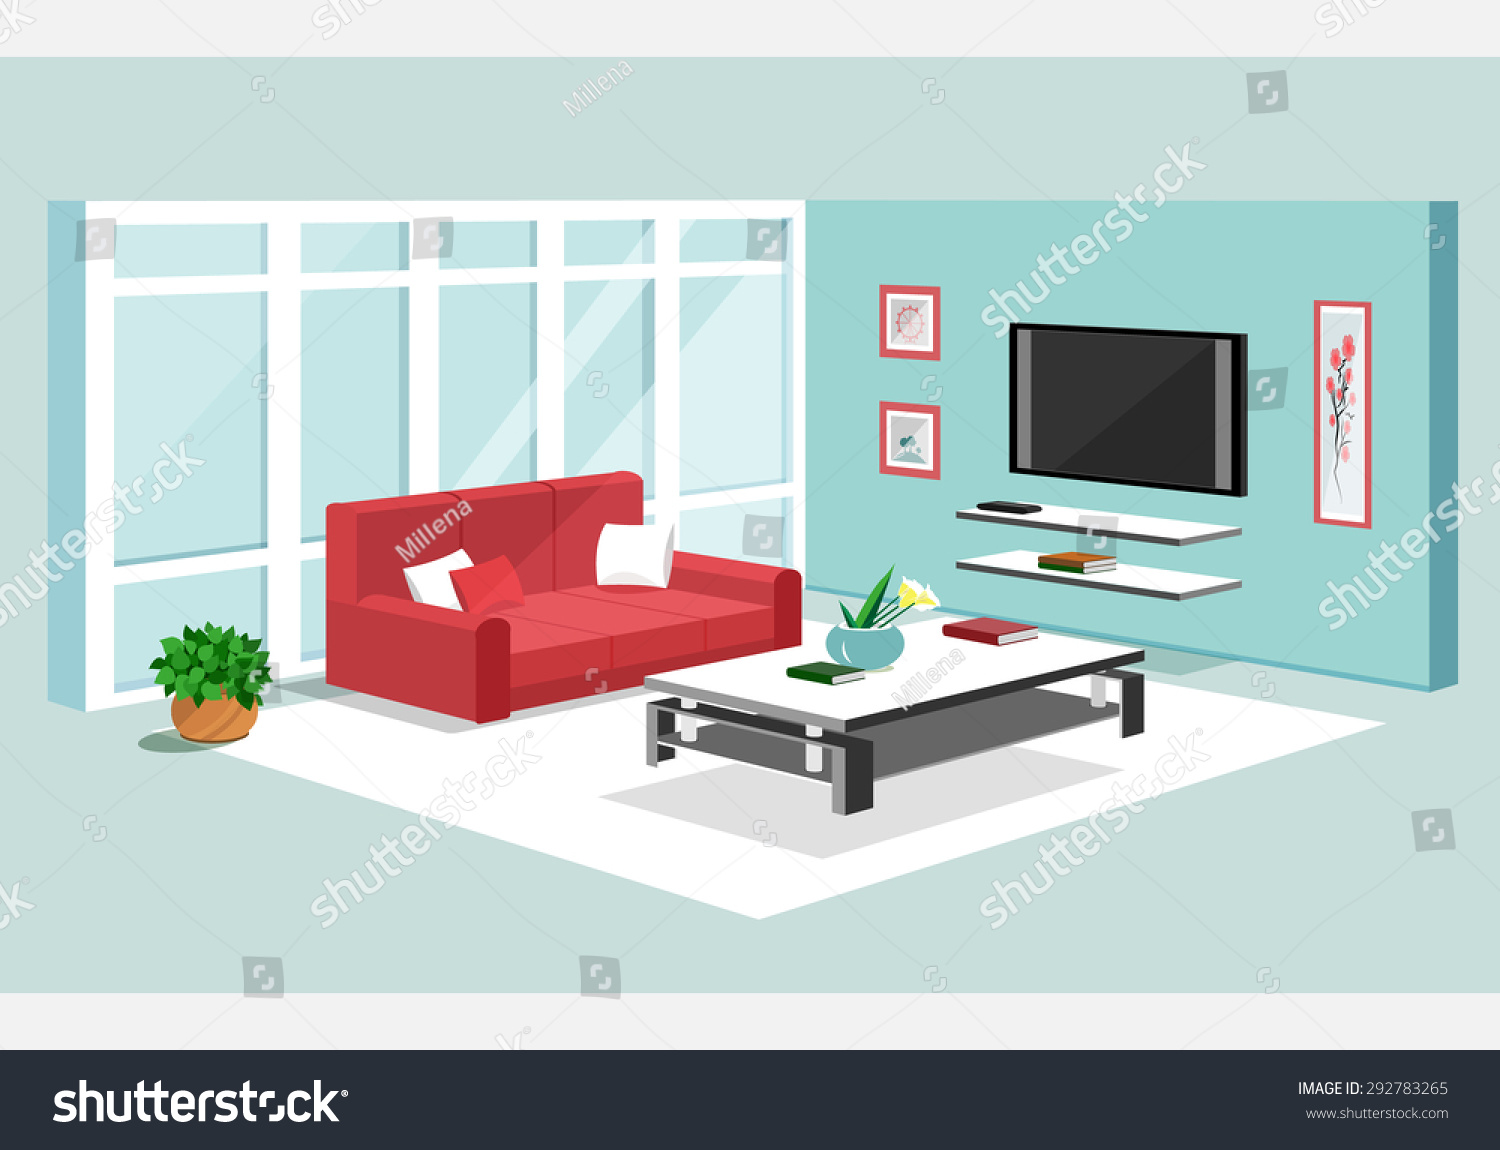 3d isometric design apartment modern graphic stock vector for Furniture 3d design